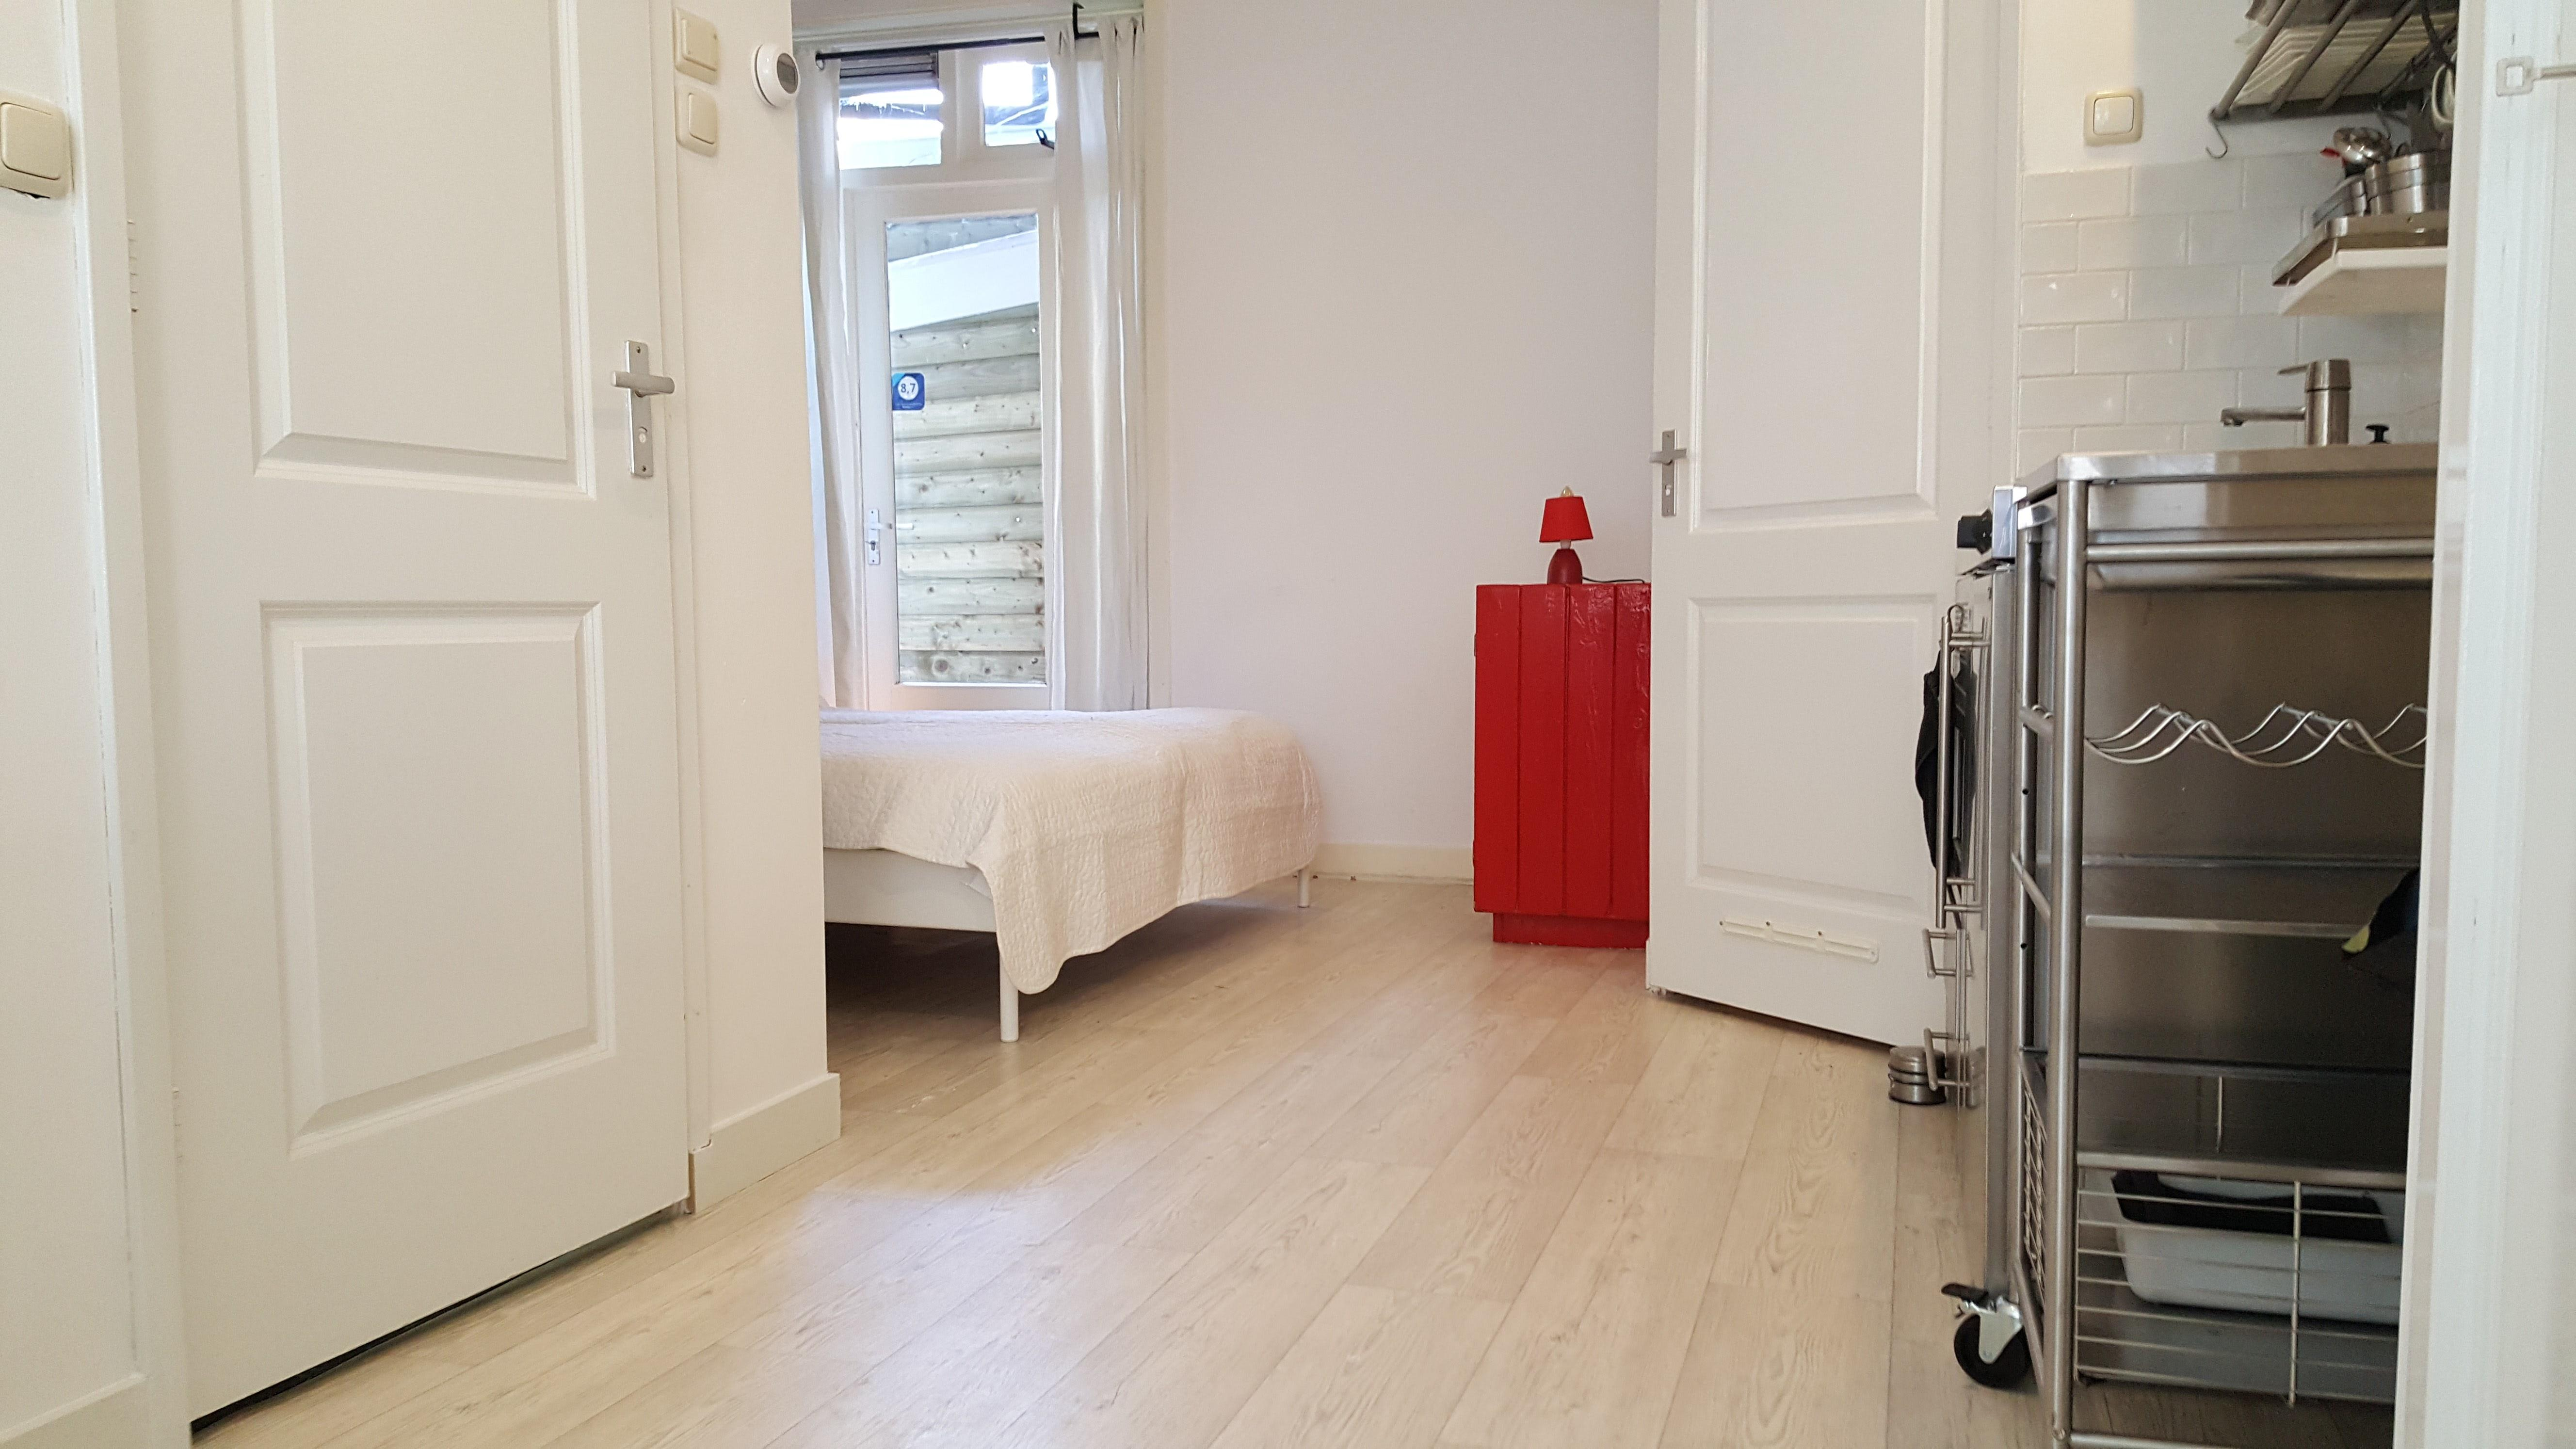 Apartment Clean studio 2 KM  from Anne Frank house  3 KM from Dam Square photo 23229764